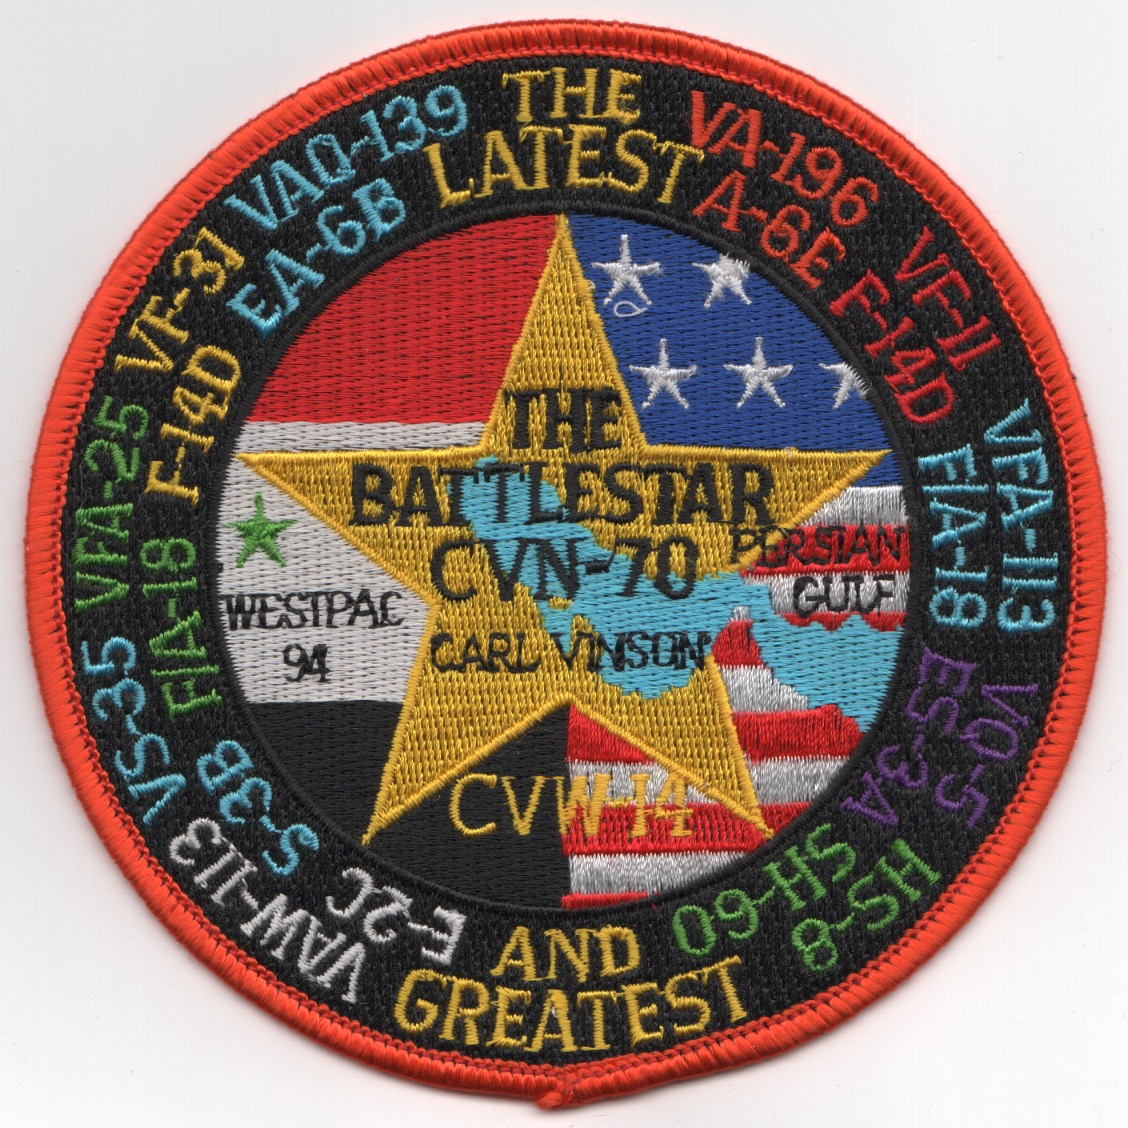 VA-196/VAQ-139 1994 'WESTPAC' Cruise Patch